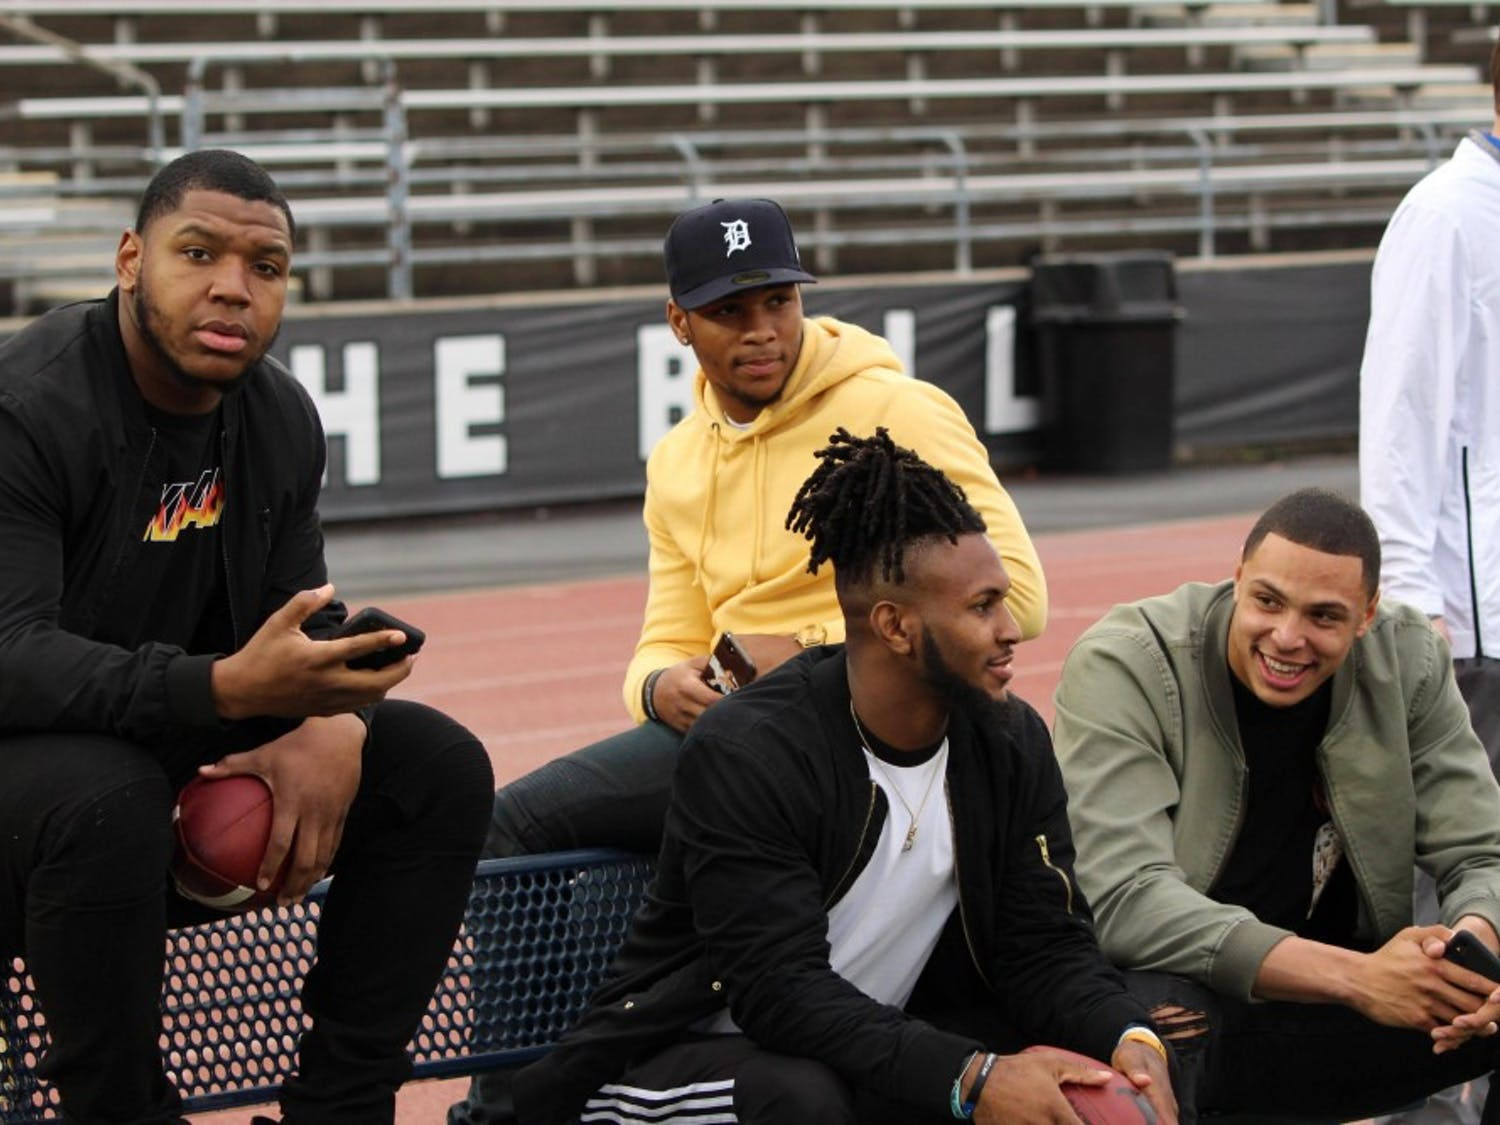 UB football alum Chuck Harris, Cameron Lewis, Anthony Johnson and Tyree Jackson sit on the sidelines during the annual spring football game. All four signed with an NFL team this weekend.